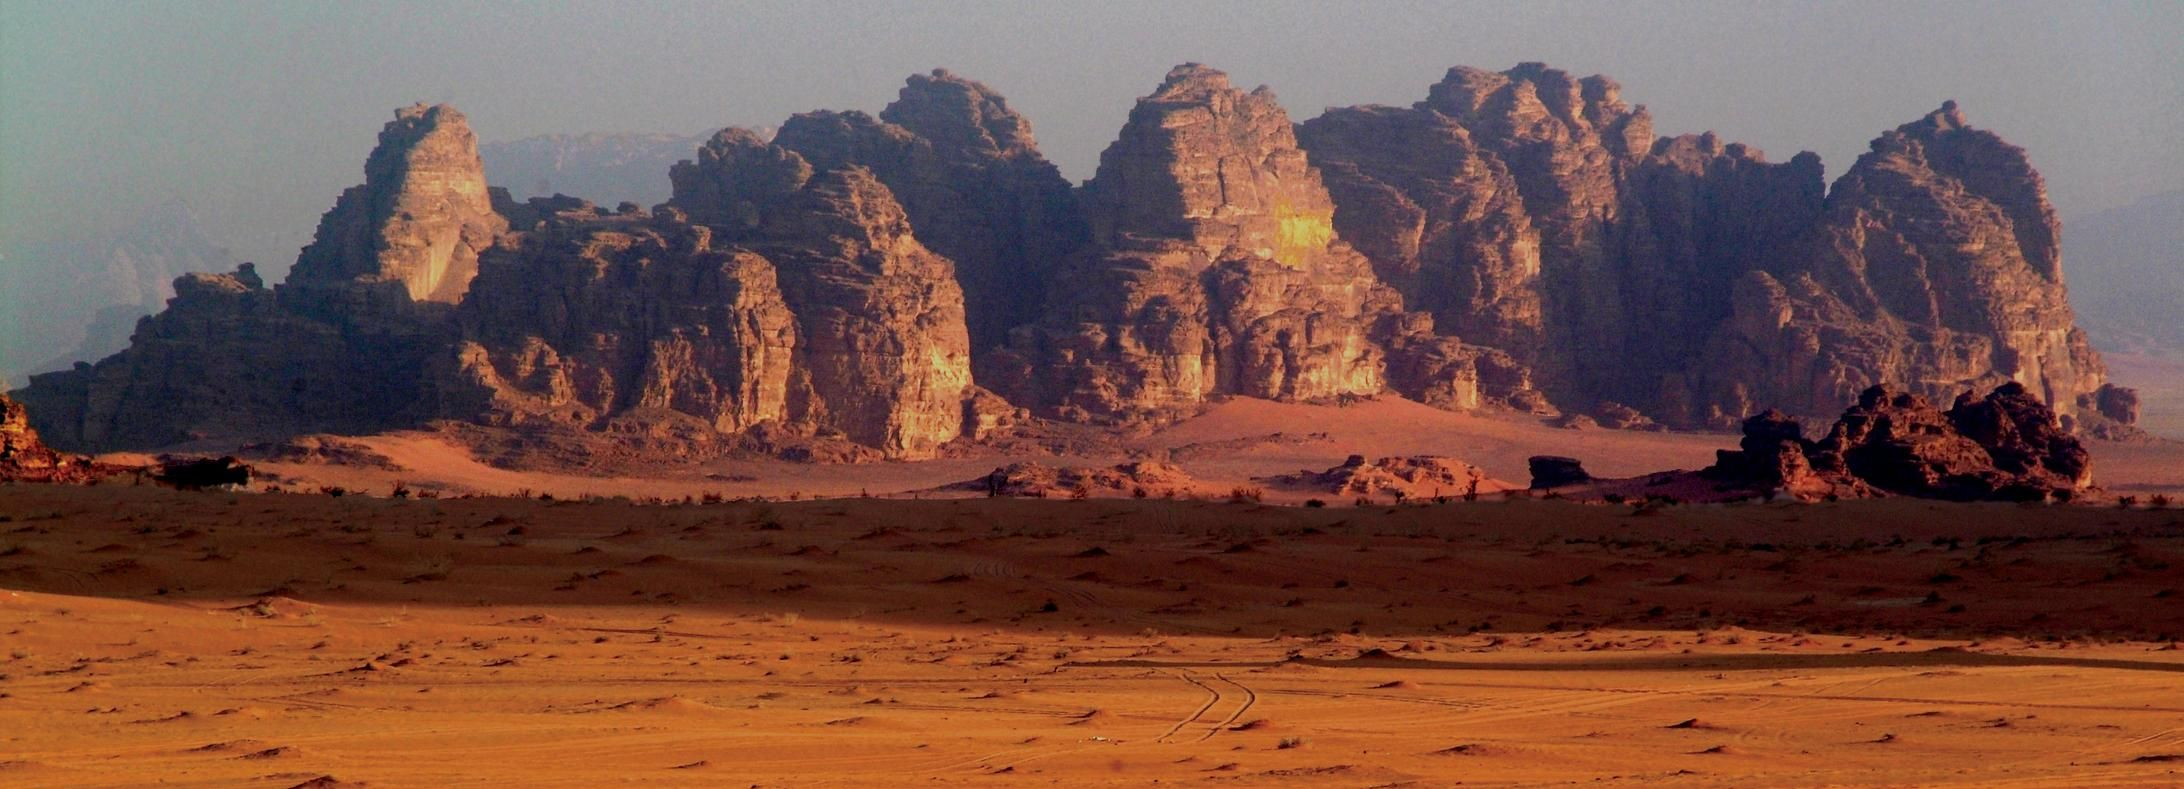 From Aqaba: 2-Hour Jeep Tour to Wadi Rum